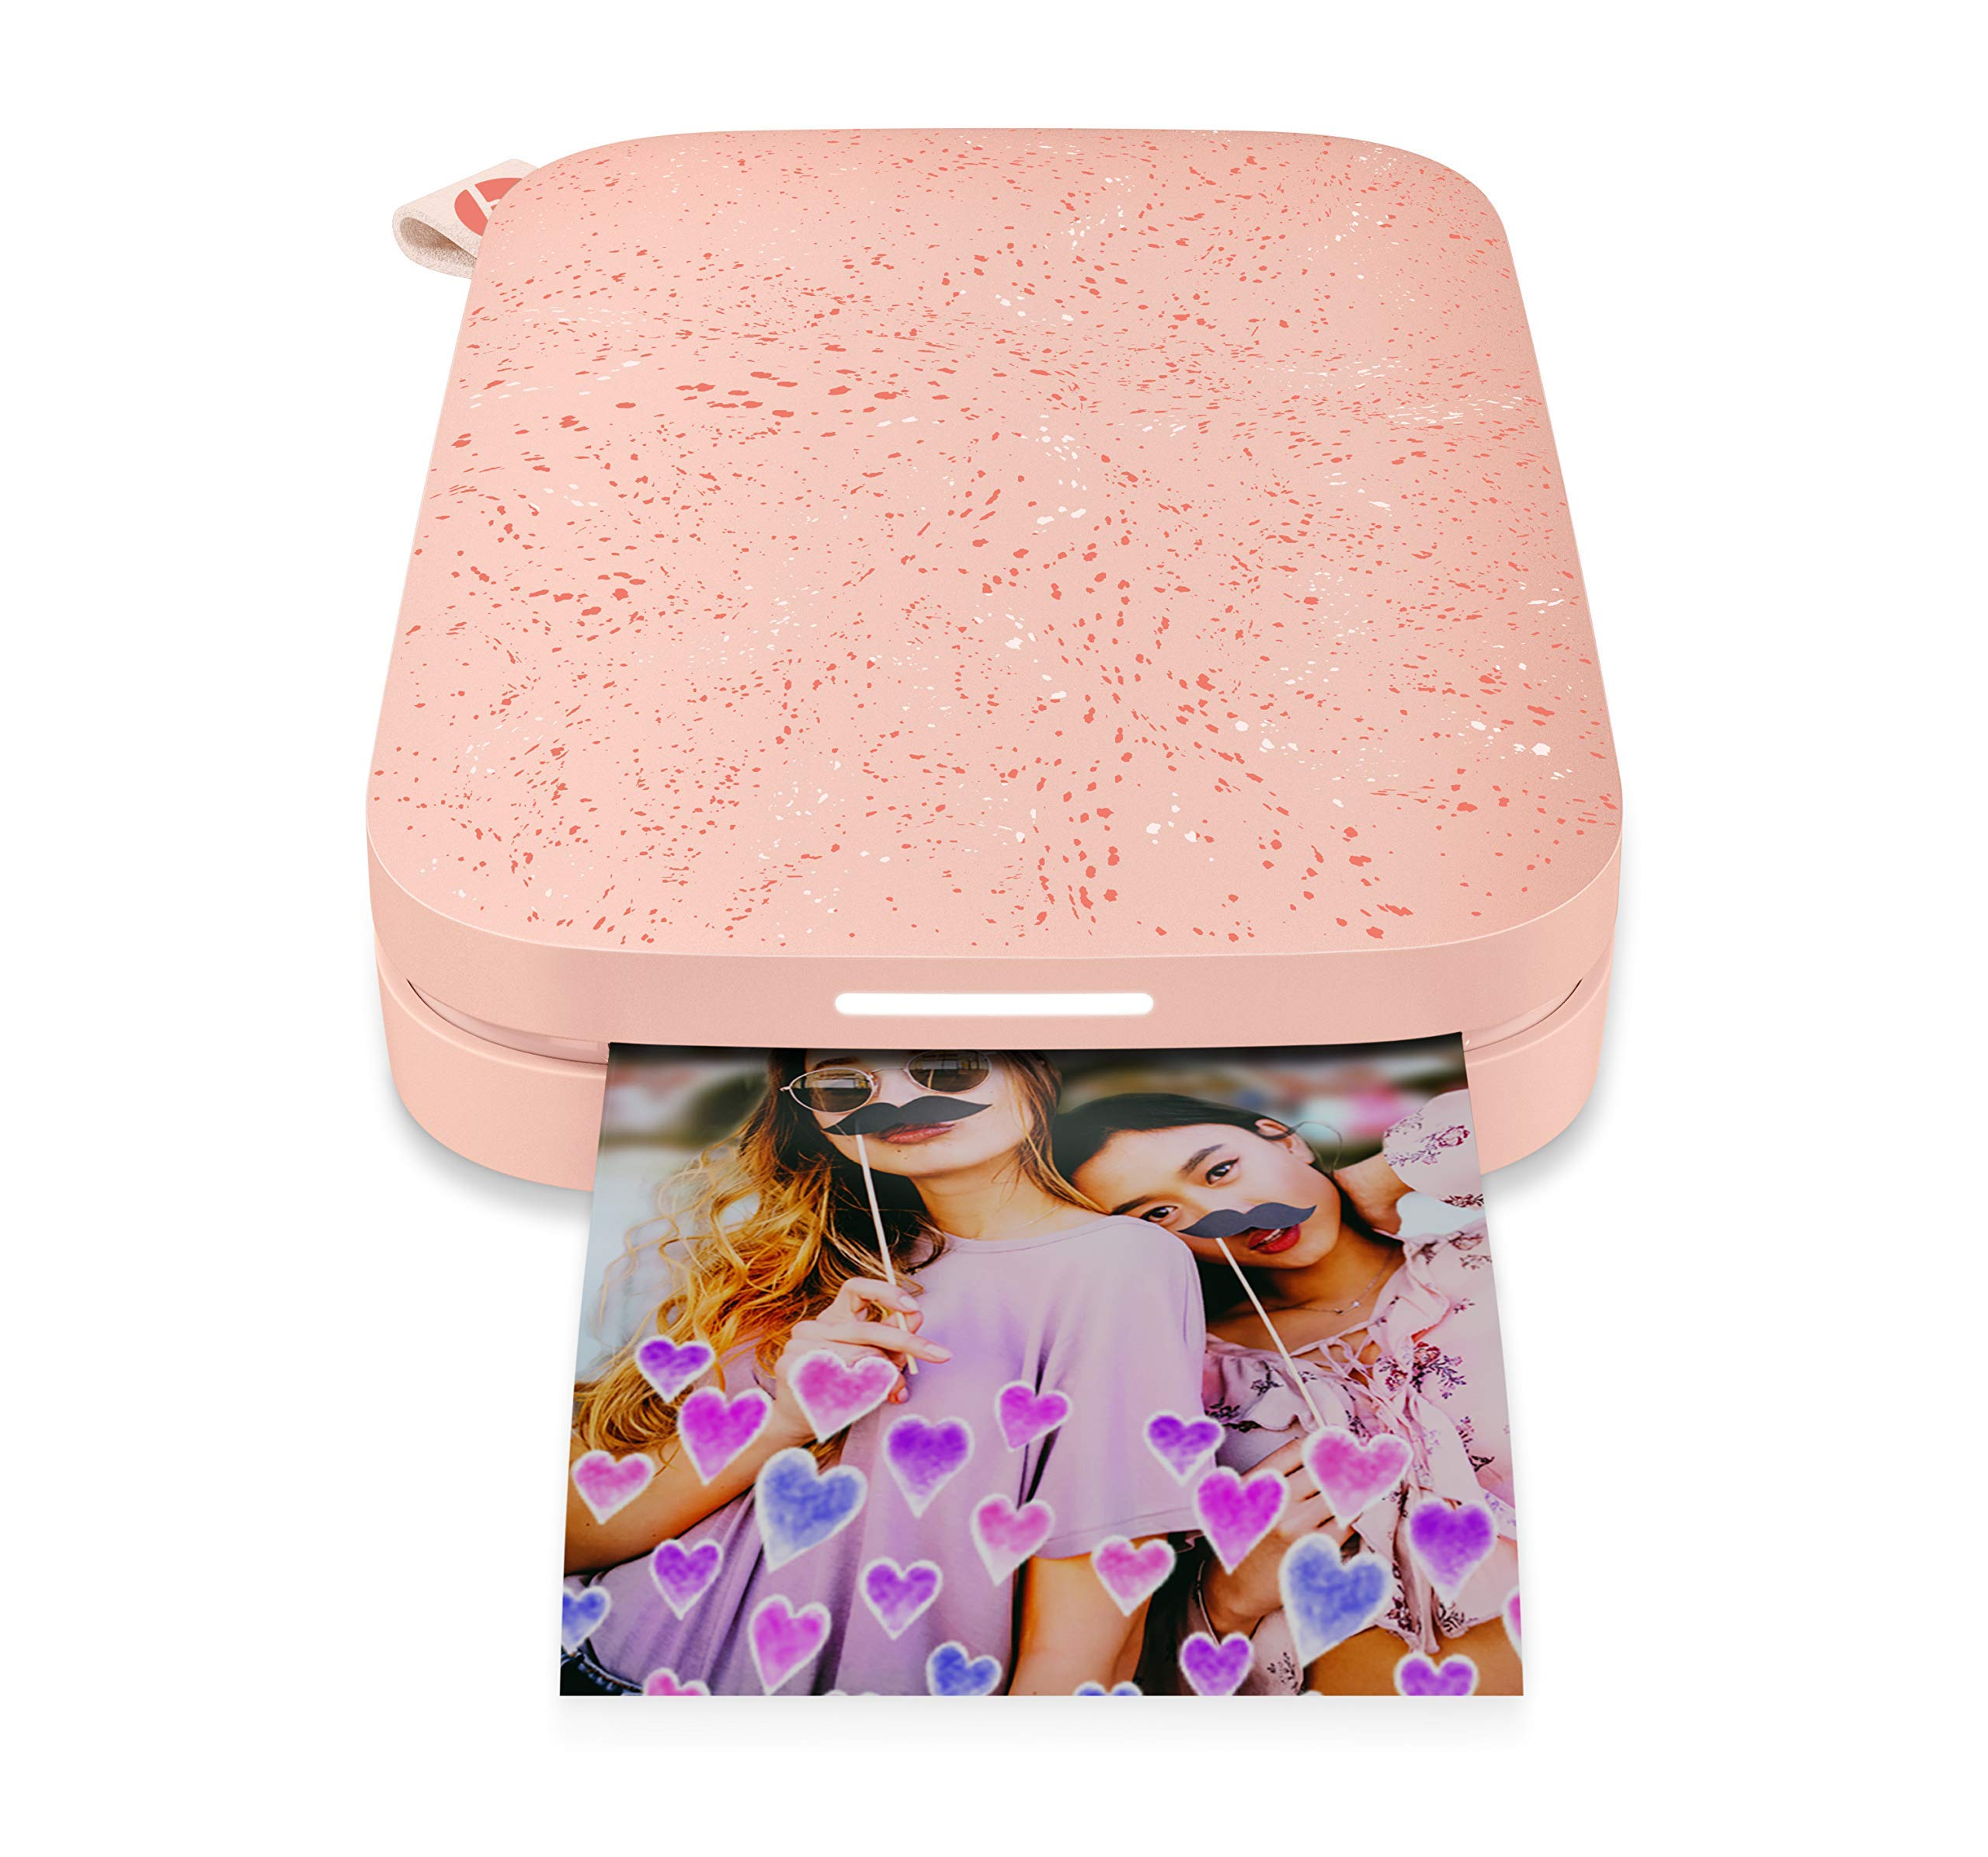 HP Sprocket Portable Photo Printer (2nd Edition) - Instantly Print 2x3 Sticky-Backed Photos from Your Phone - [Blush] [1AS89A] (Renewed) by HP